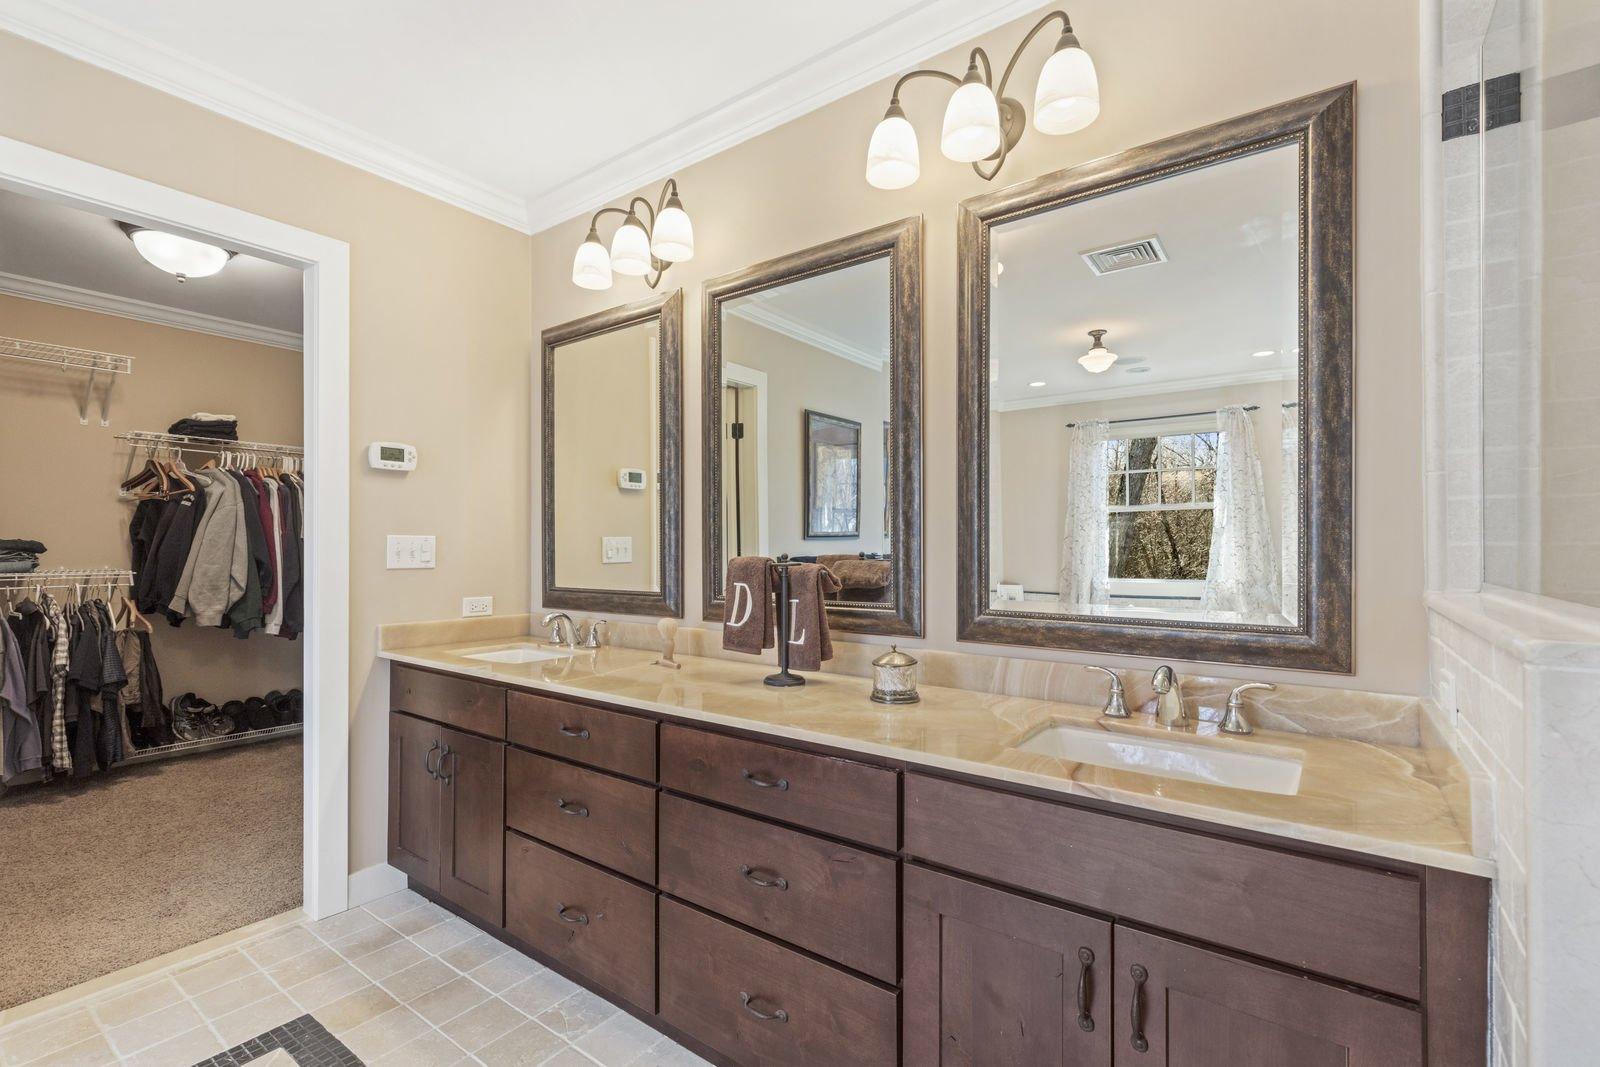 Bath Room, Wall Lighting, Undermount Sink, and Granite Counter  Shingle Style Rustic Chic